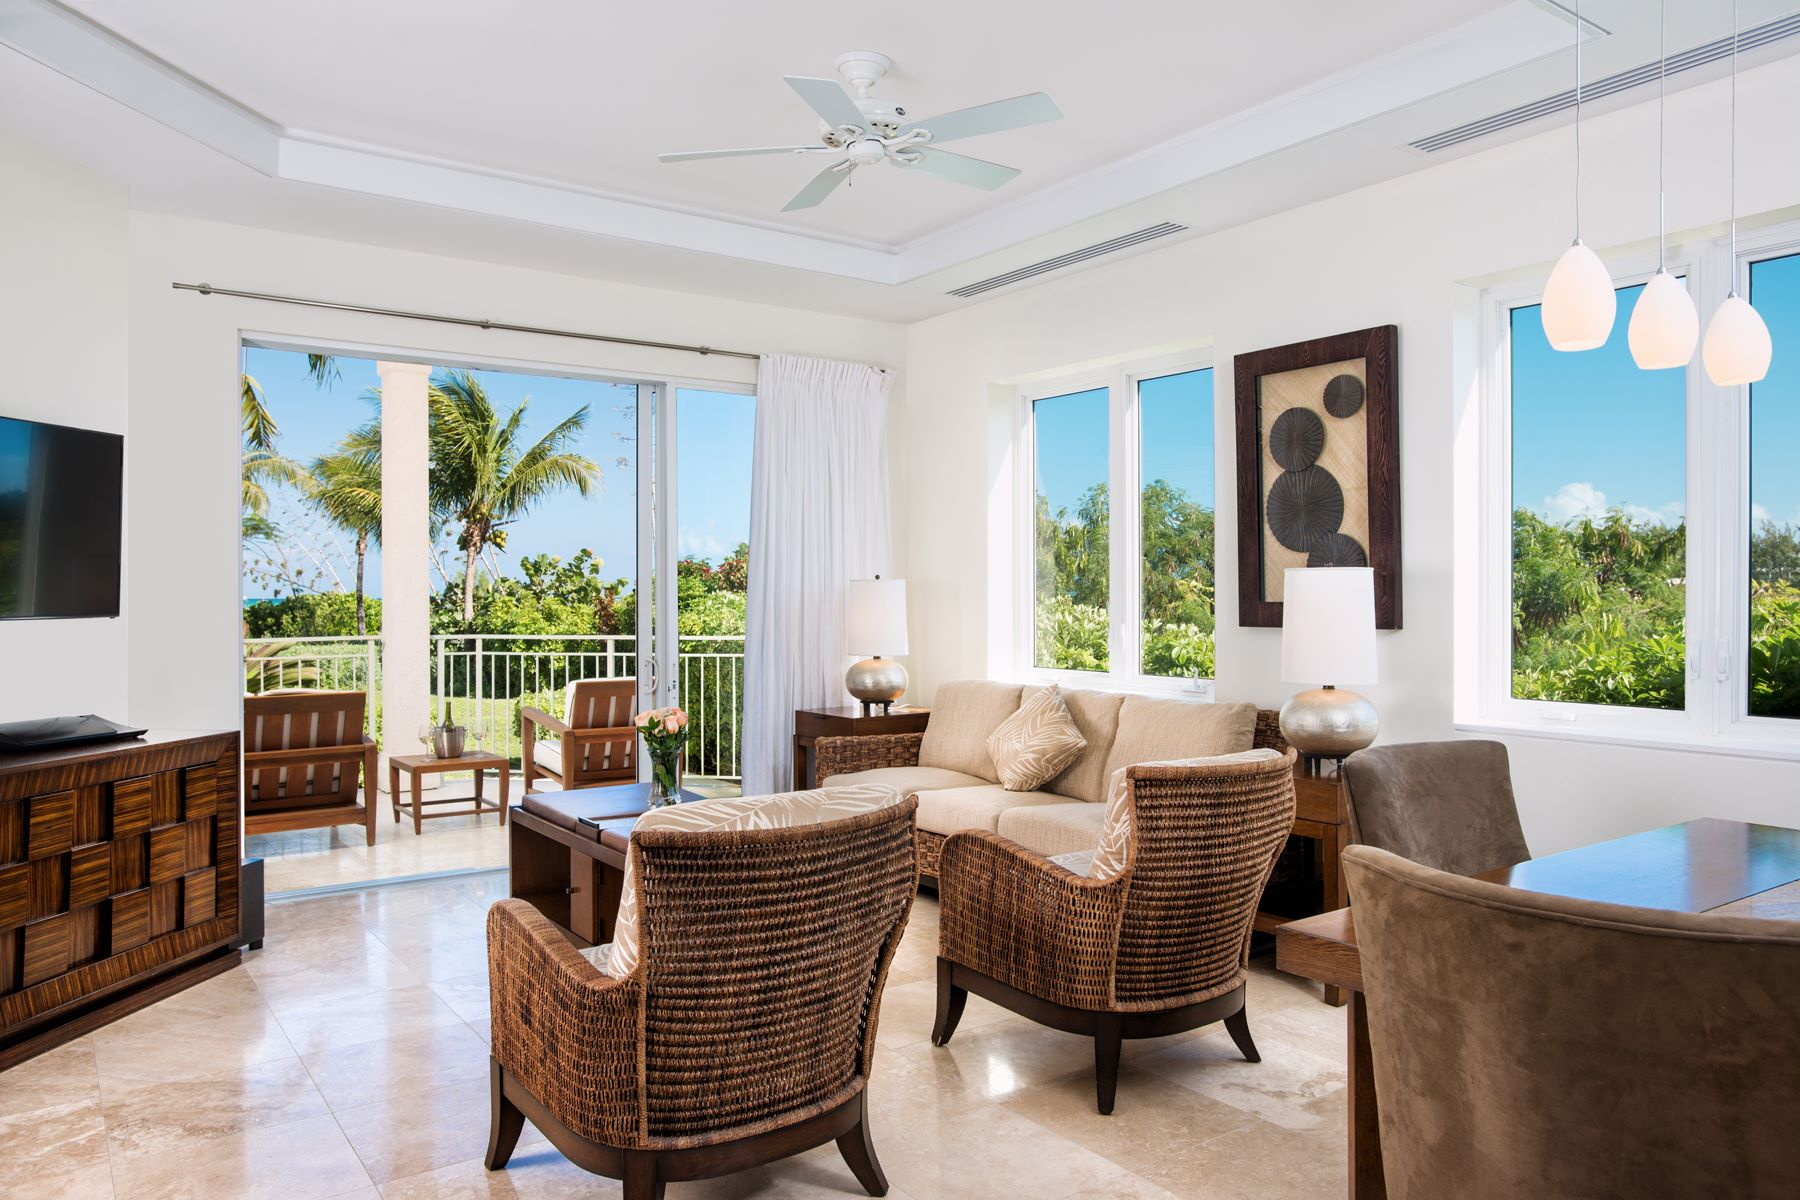 Additional photo for property listing at West Bay Club - Suite 110 West Bay Club, Grace Bay, Providenciales Turks And Caicos Islands